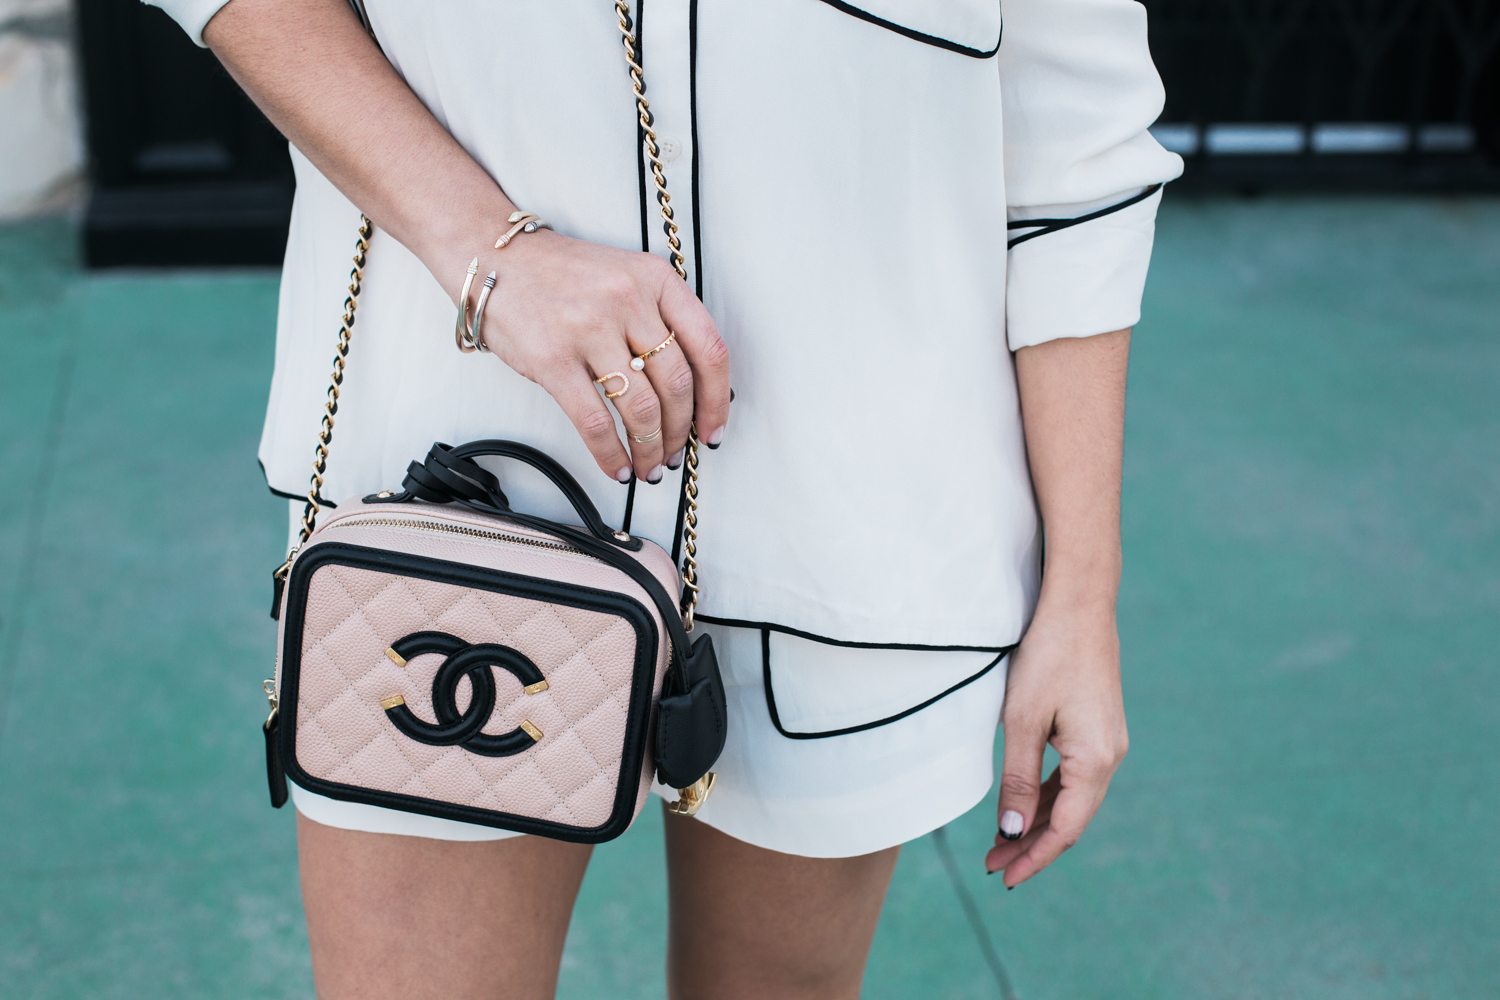 Style MBA Wears Chanel Vanity Case Bag